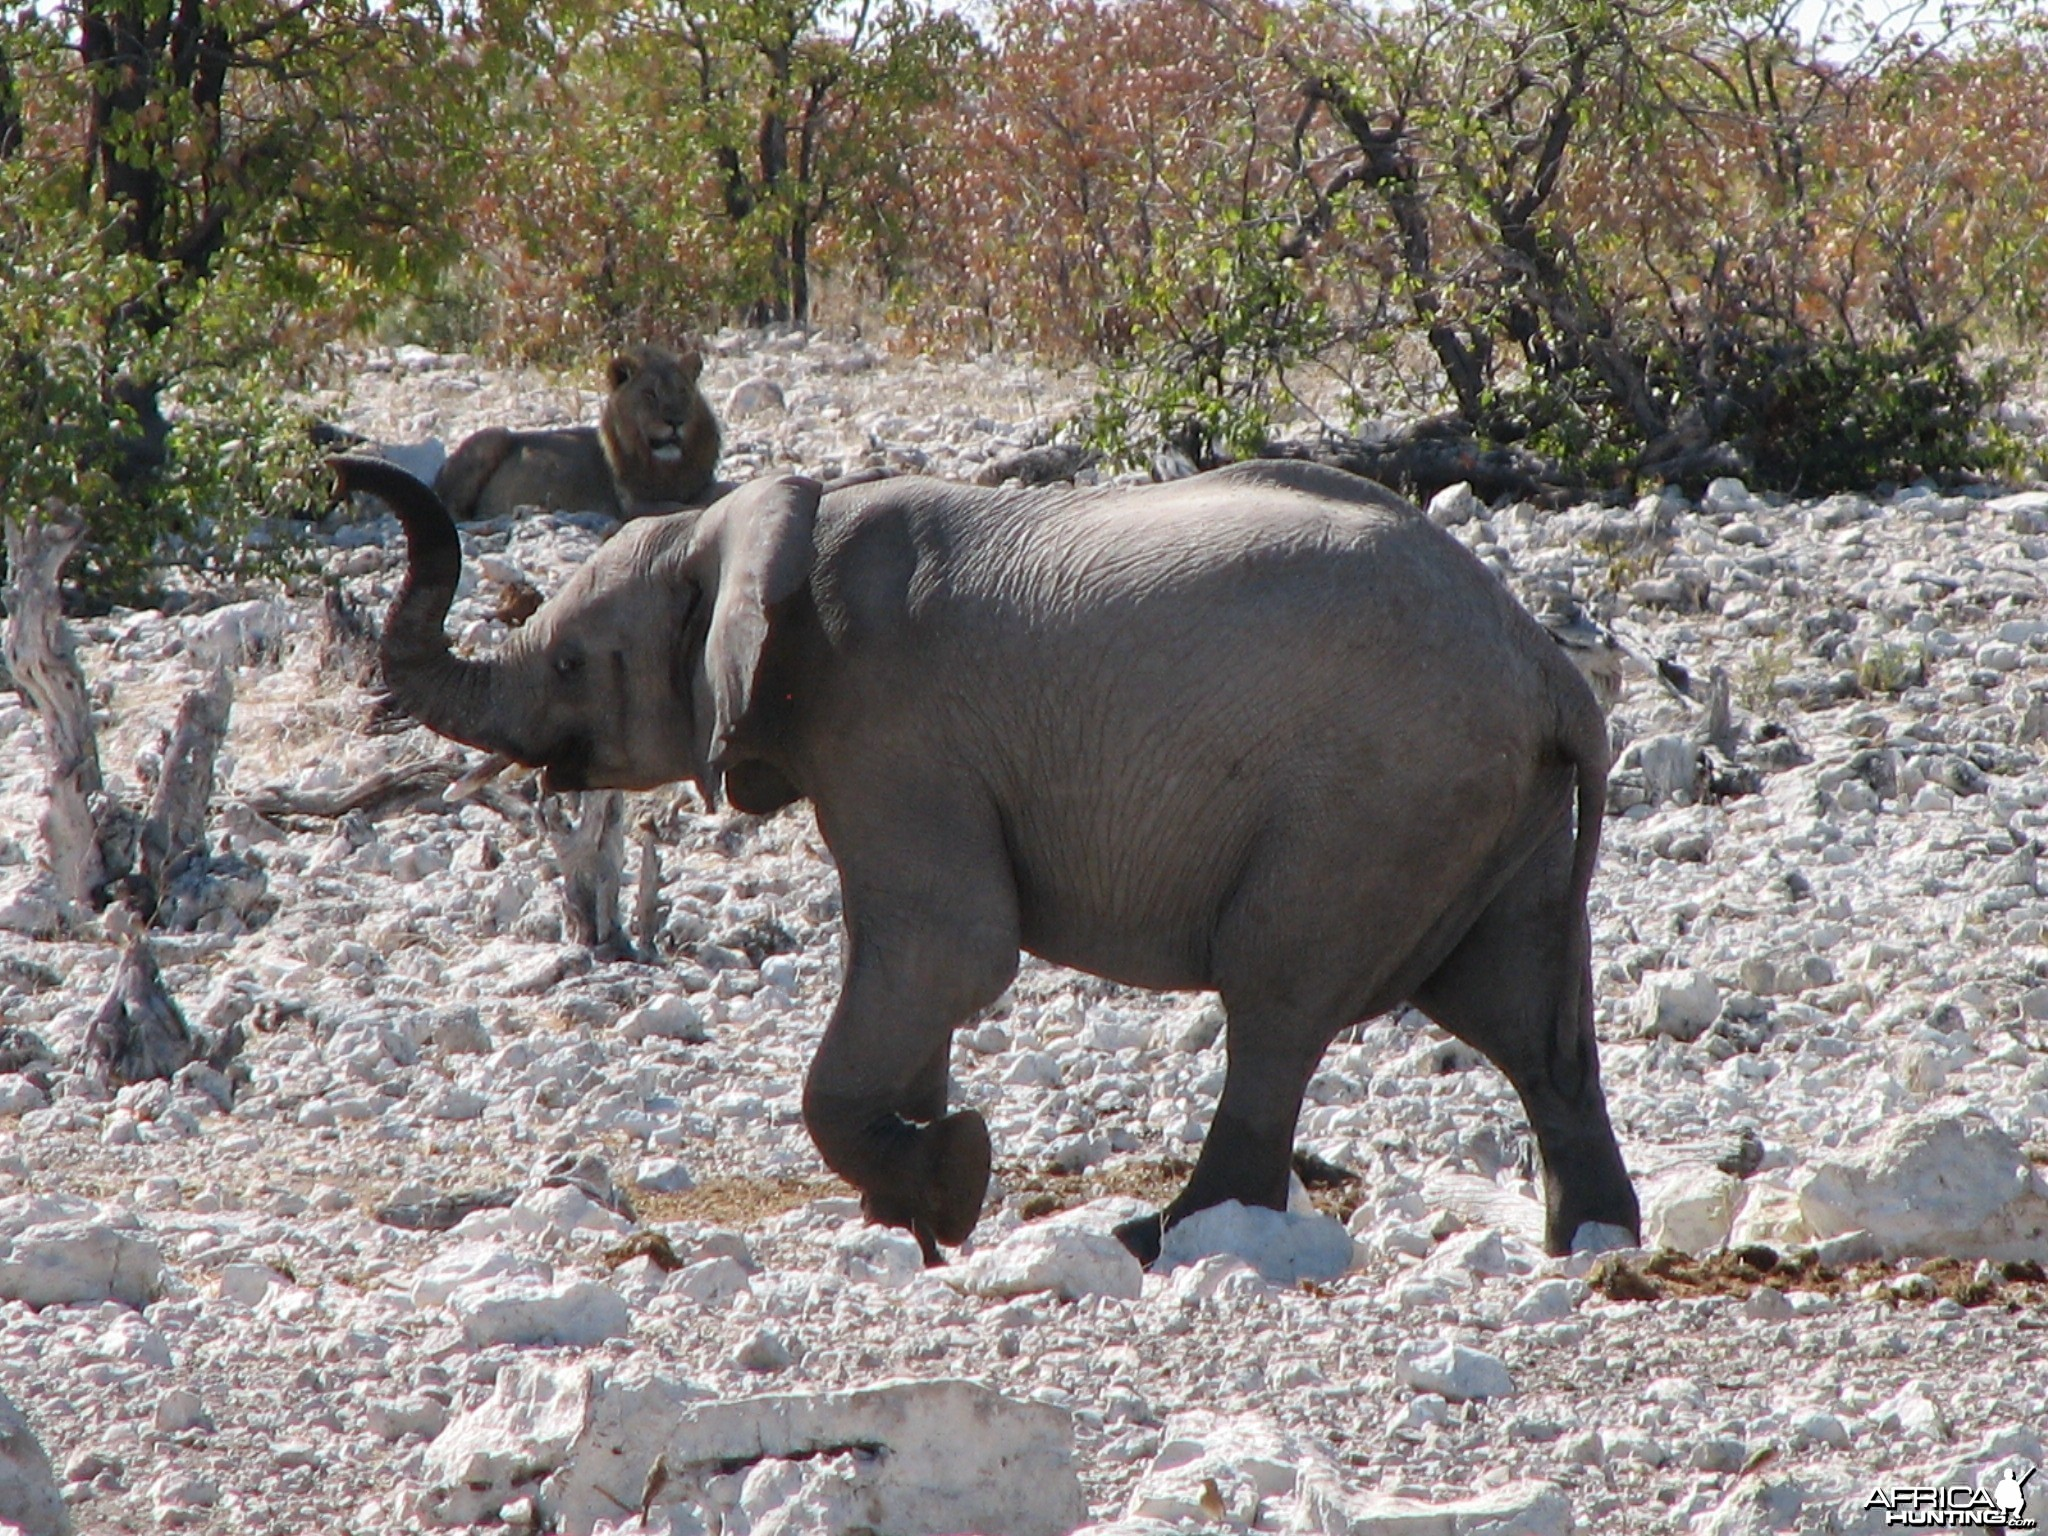 Young Elephant at Etosha National Park, Namibia